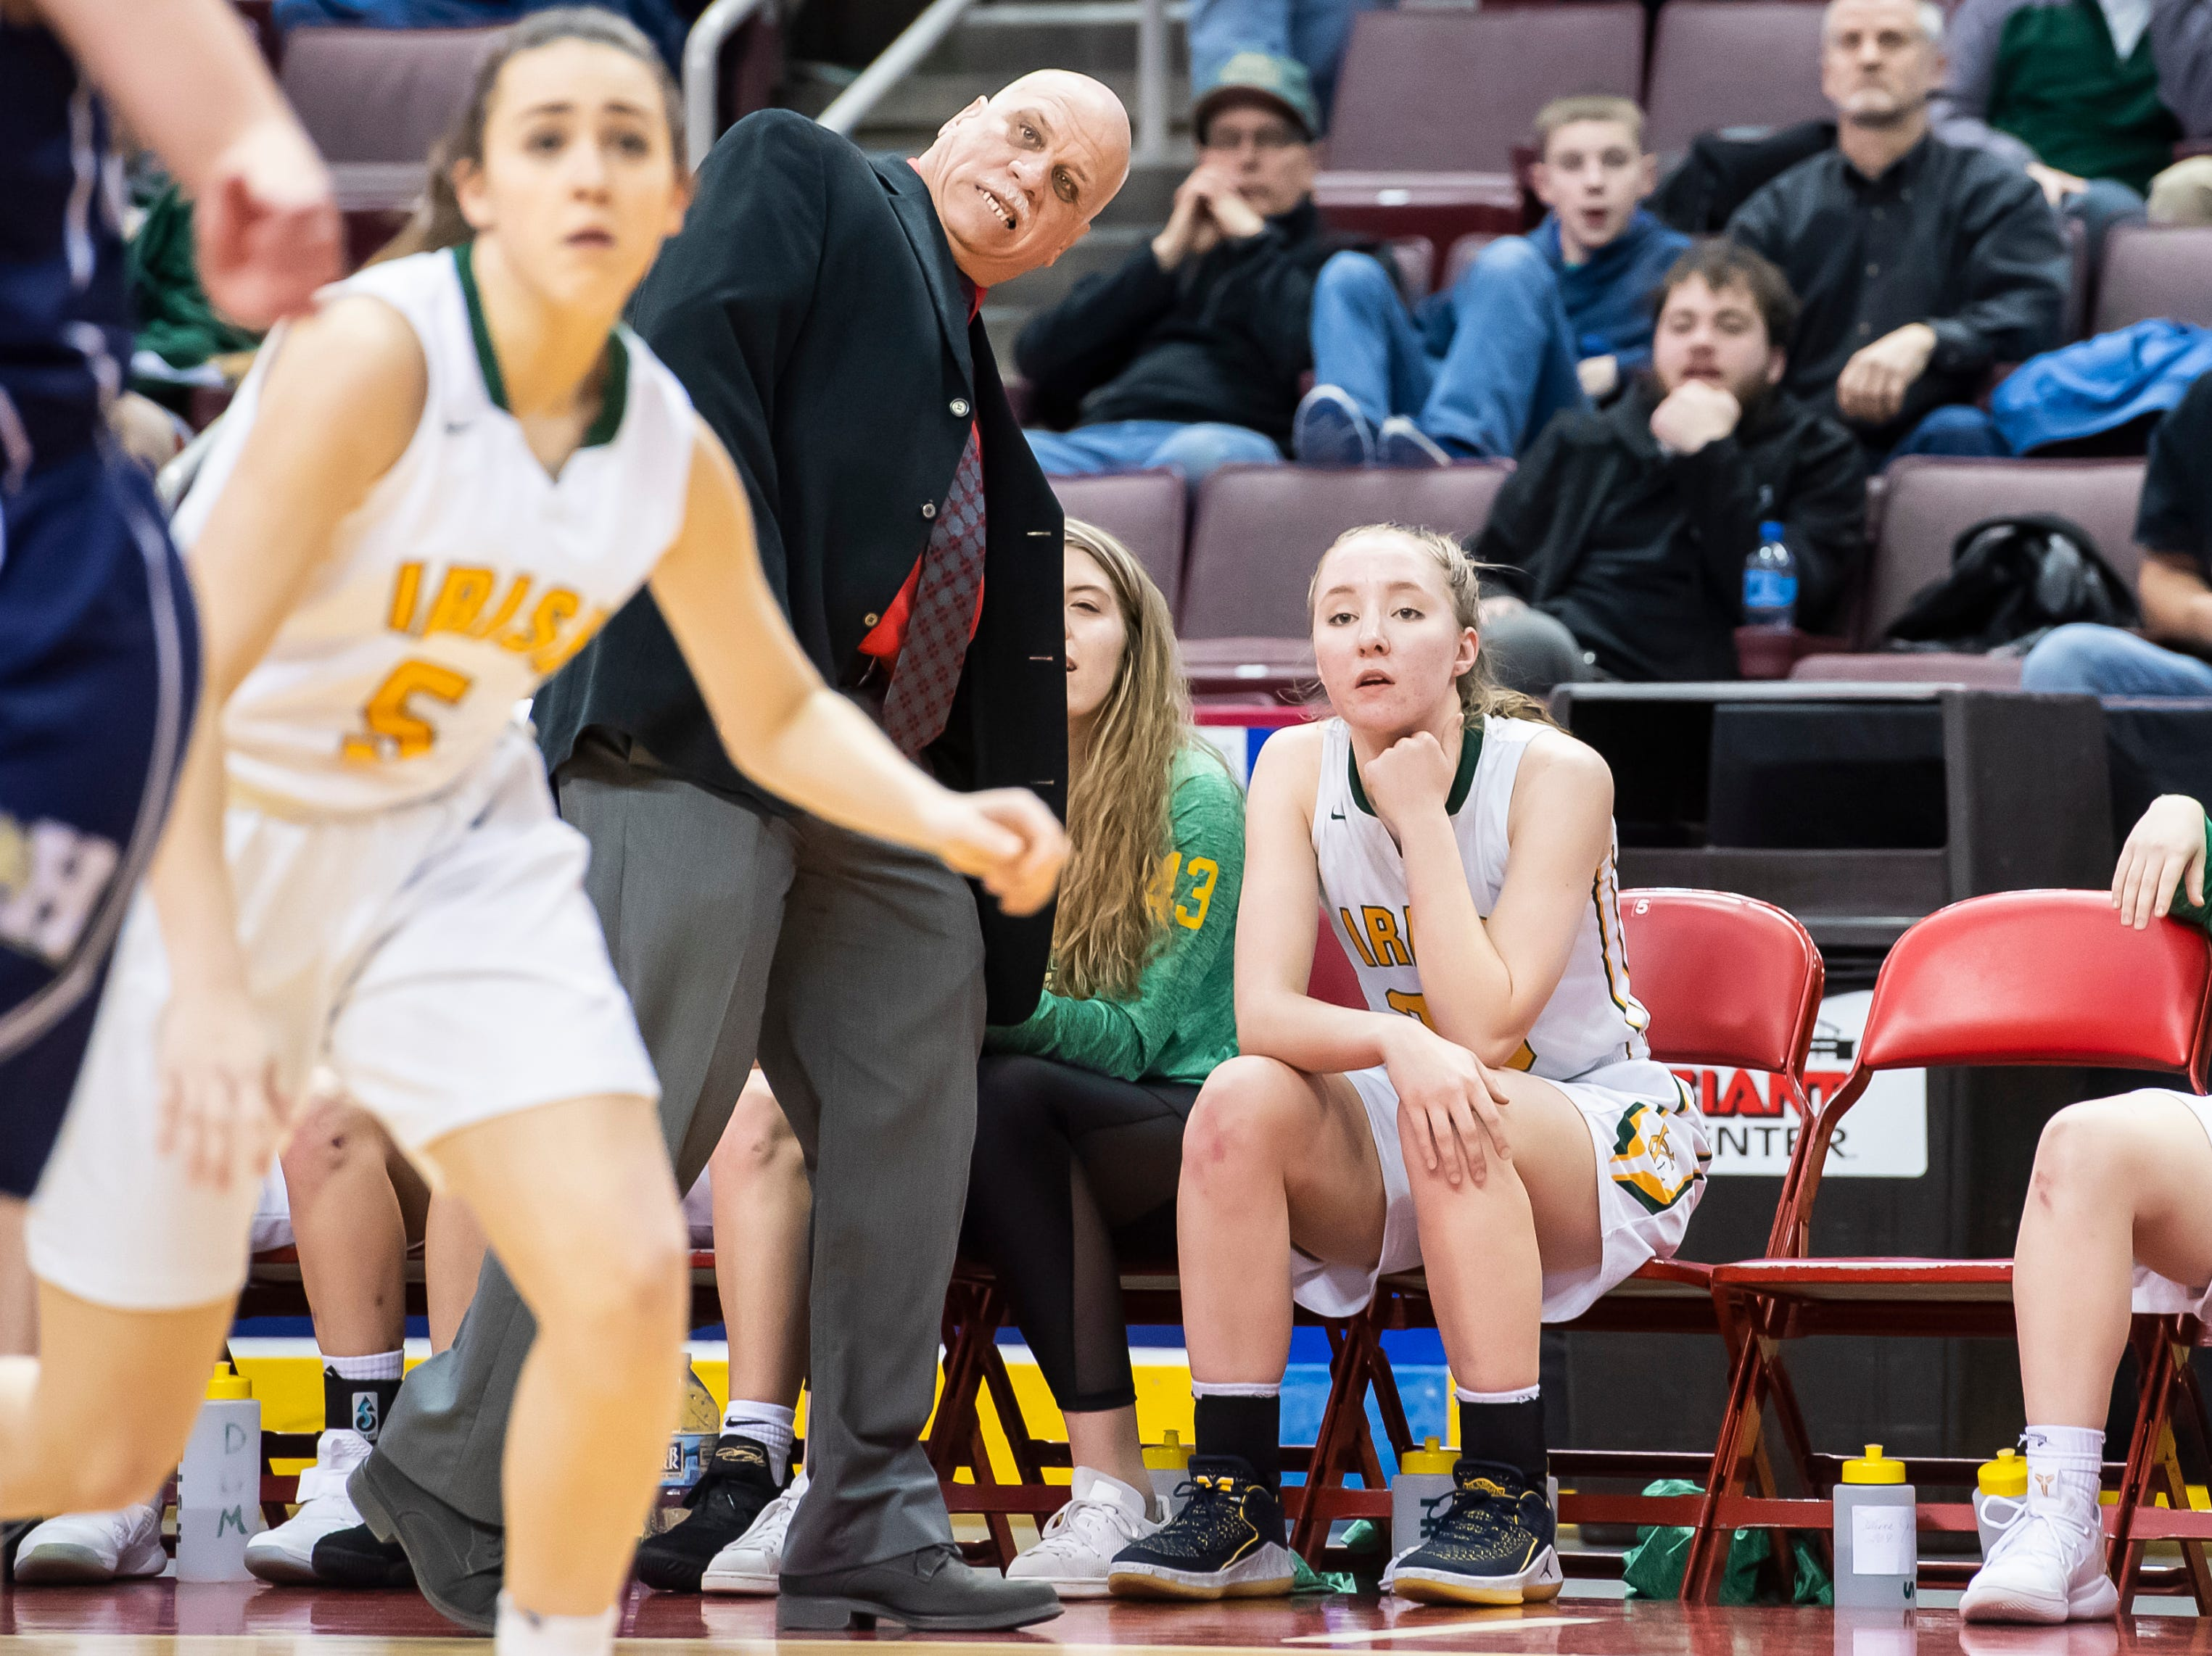 York Catholic head coach Kevin Bankos watches as the Fighting Irish take a 3-point attempt during the District 3 2-A girls championship game against Linden Hall at the Giant Center in Hershey Tuesday, Feb. 26, 2019. The Fighting Irish fell 56-27.